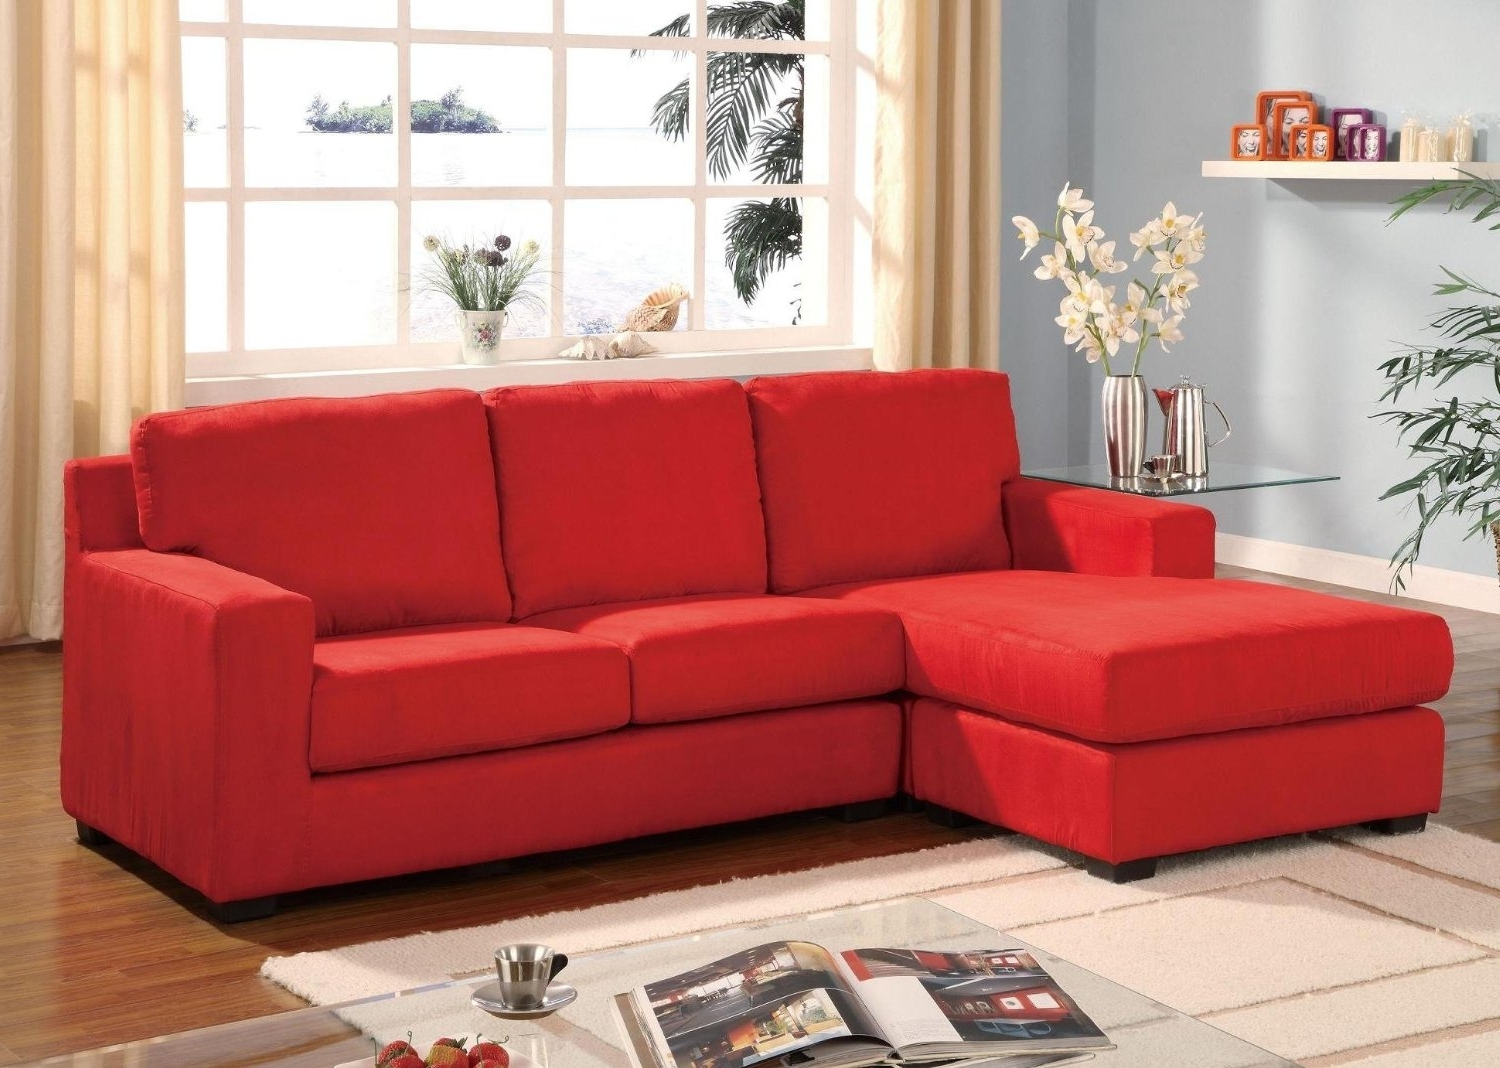 Fashionable Small Red Sectional Sofa – Home And Textiles Within Small Red Leather Sectional Sofas (View 5 of 15)